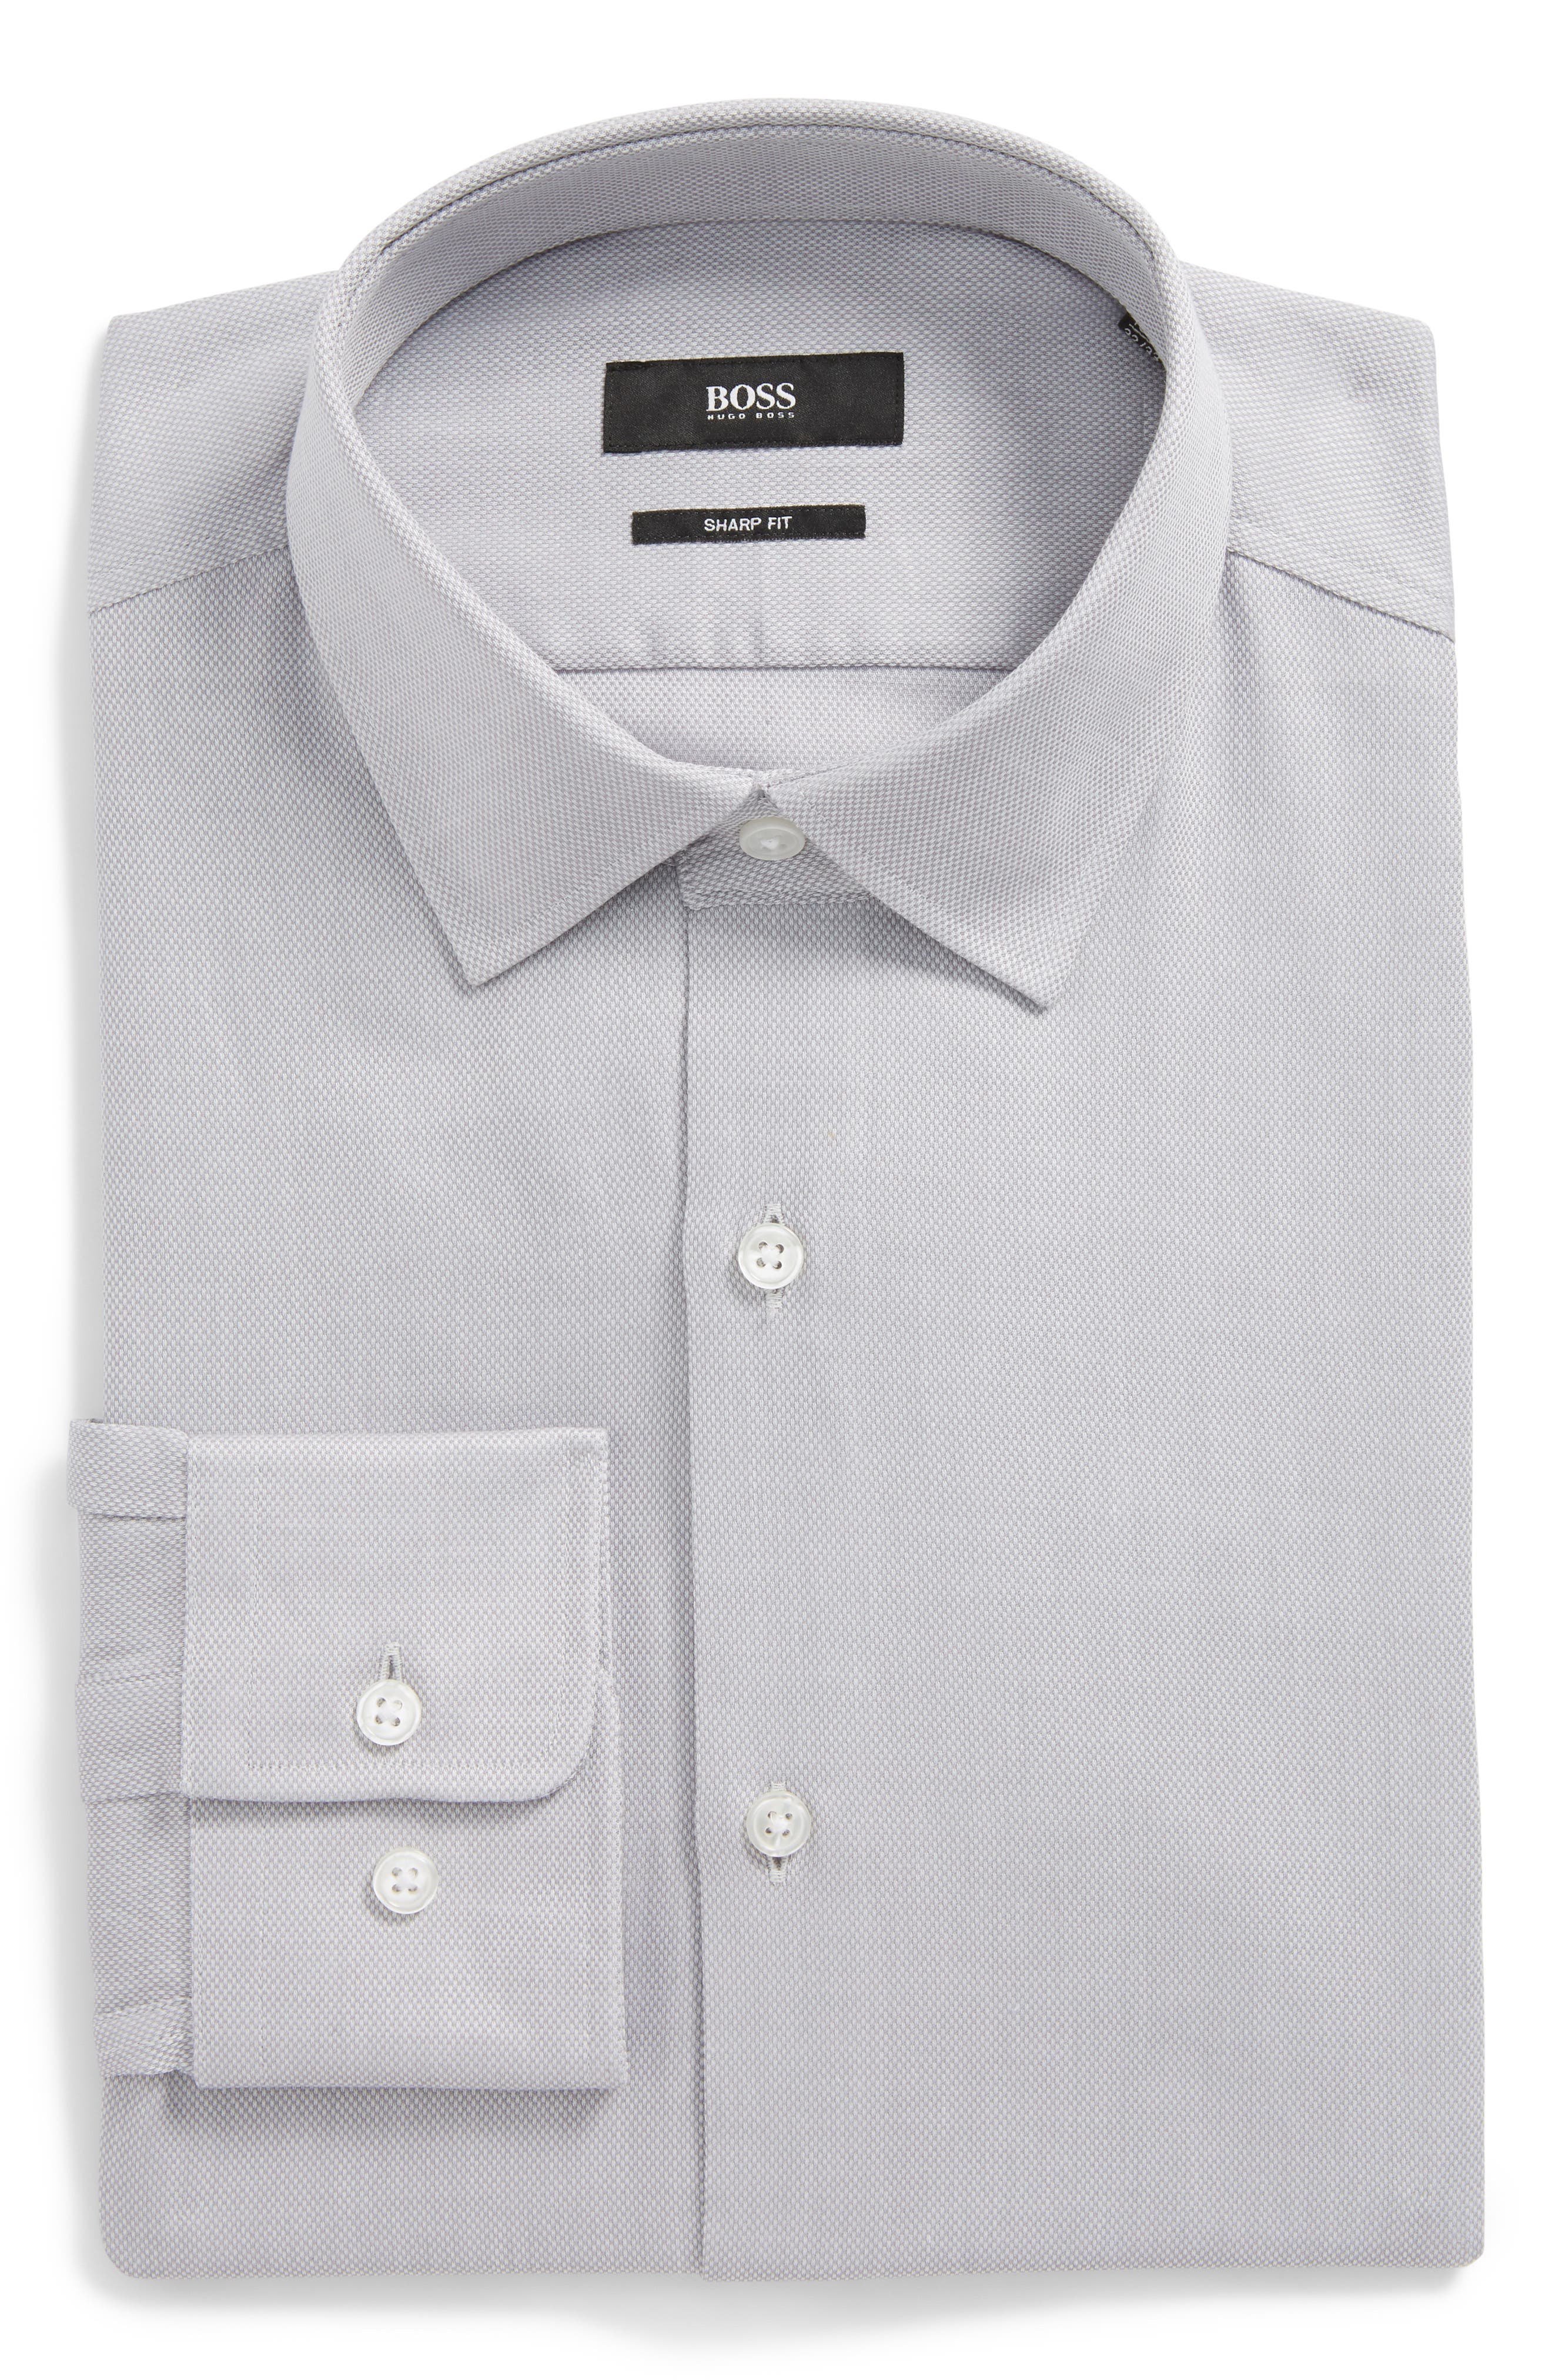 BOSS, Marley Sharp Fit Dress Shirt, Main thumbnail 1, color, GREY